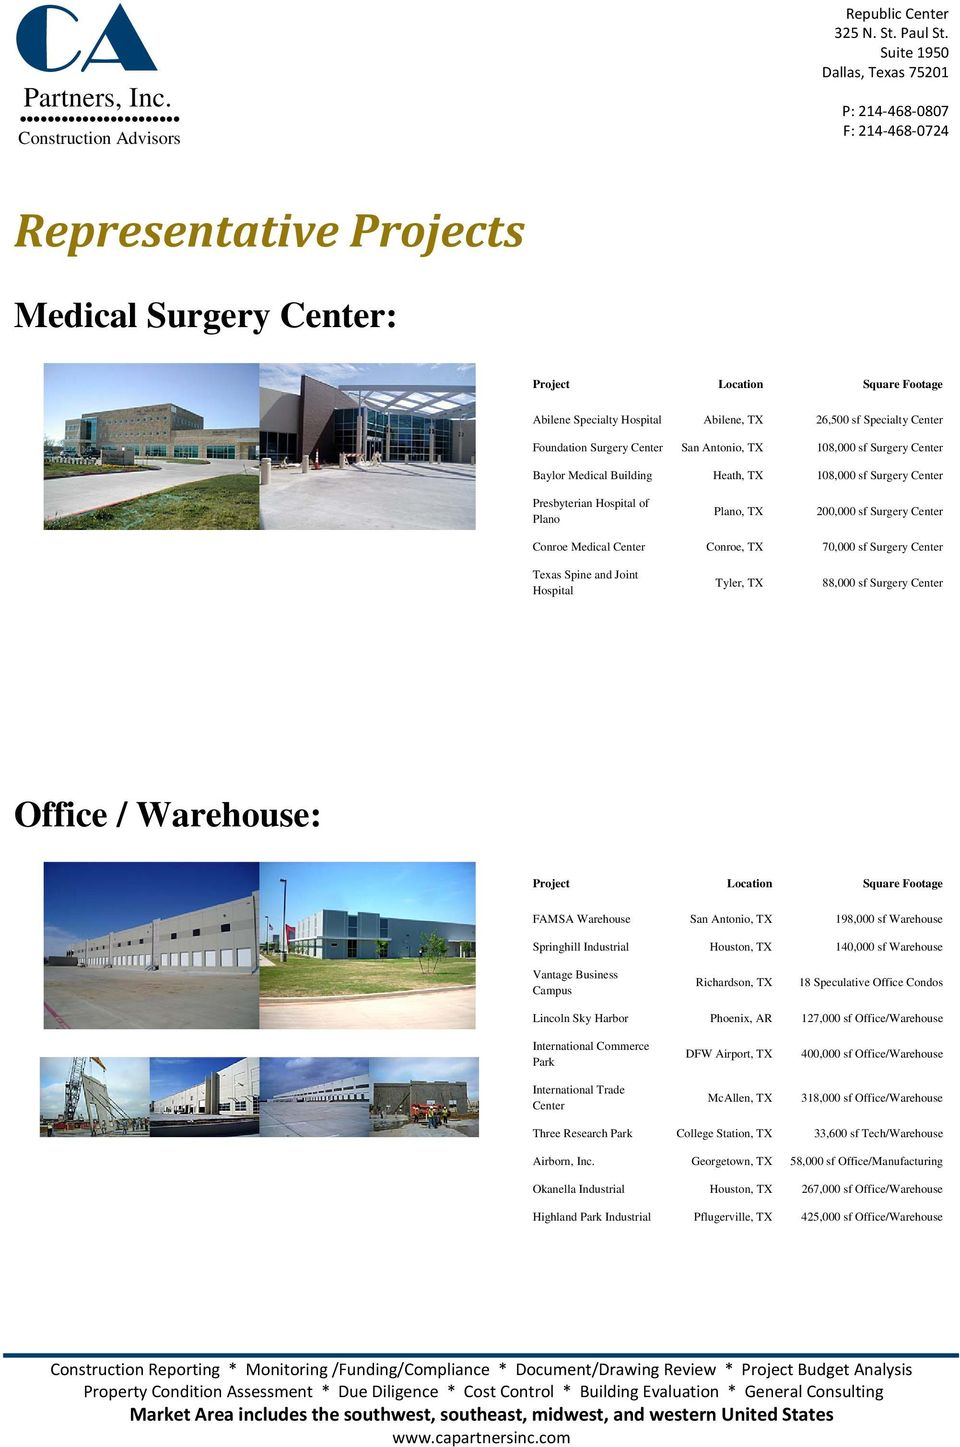 Texas Spine and Joint Hospital Tyler, TX 88,000 sf Surgery Center Office / Warehouse: Project Location Square Footage FAMSA Warehouse San Antonio, TX 198,000 sf Warehouse Springhill Industrial